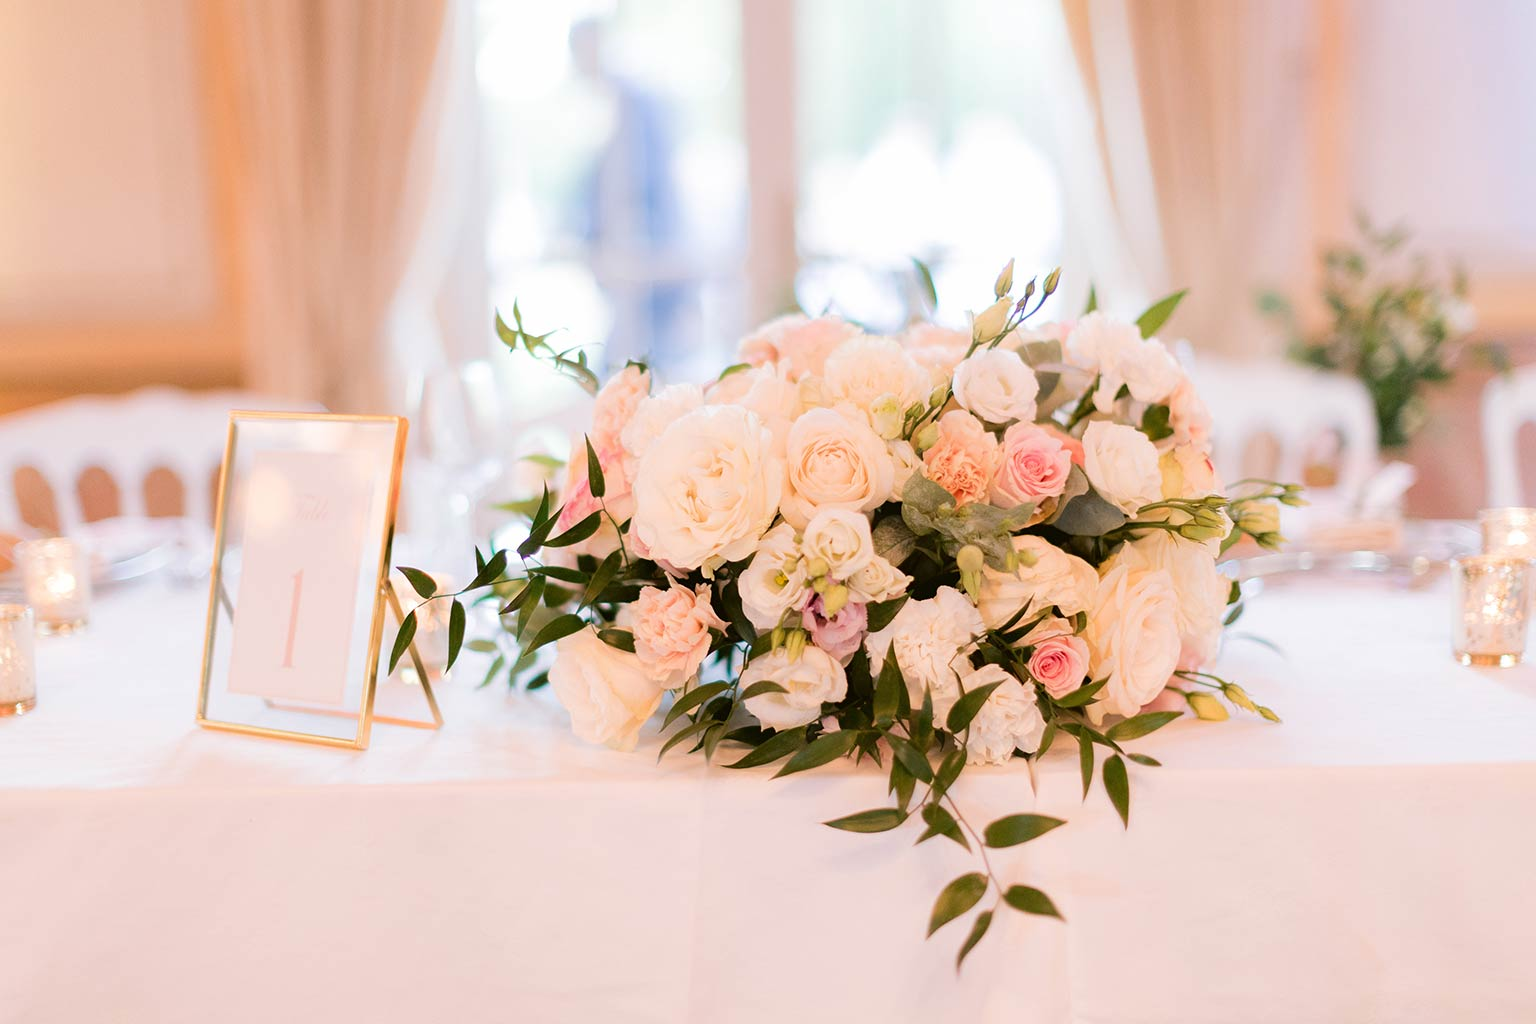 Center piece - Romantic and flowery decoration - Destination wedding between the French Riviera and Provence